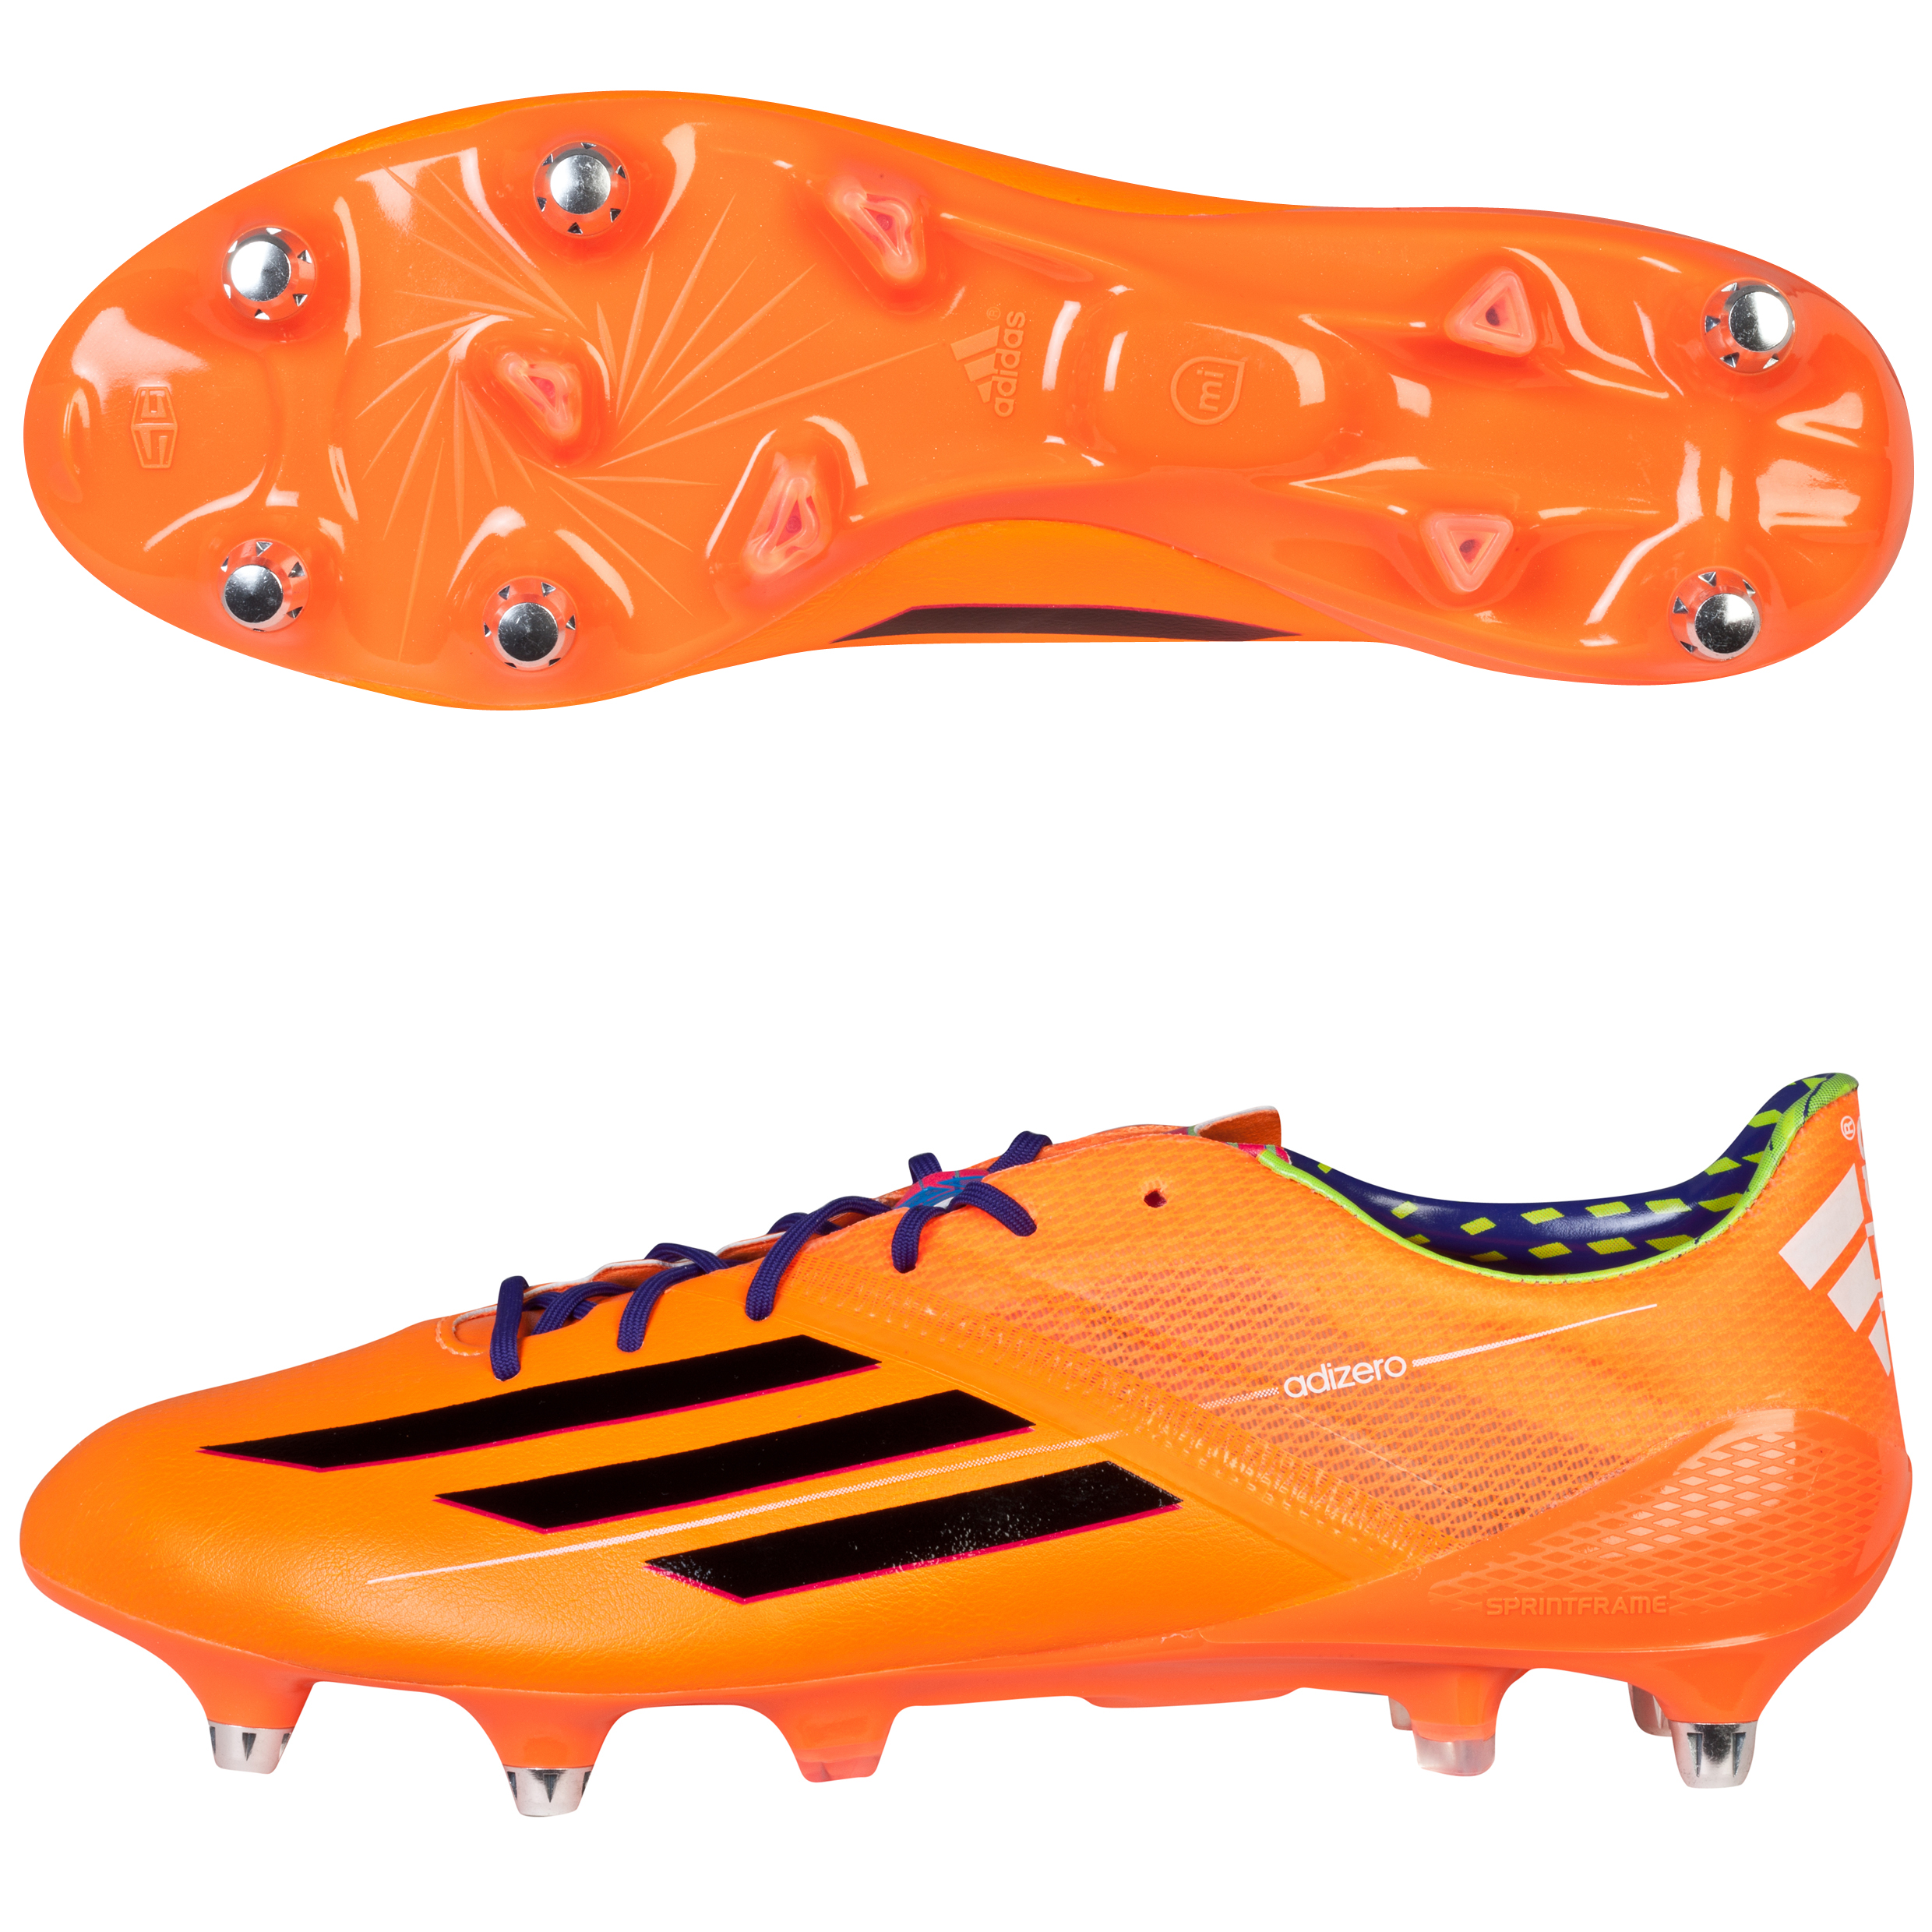 Adidas F50 adiZero XTRX Soft Ground Football Boots Orange